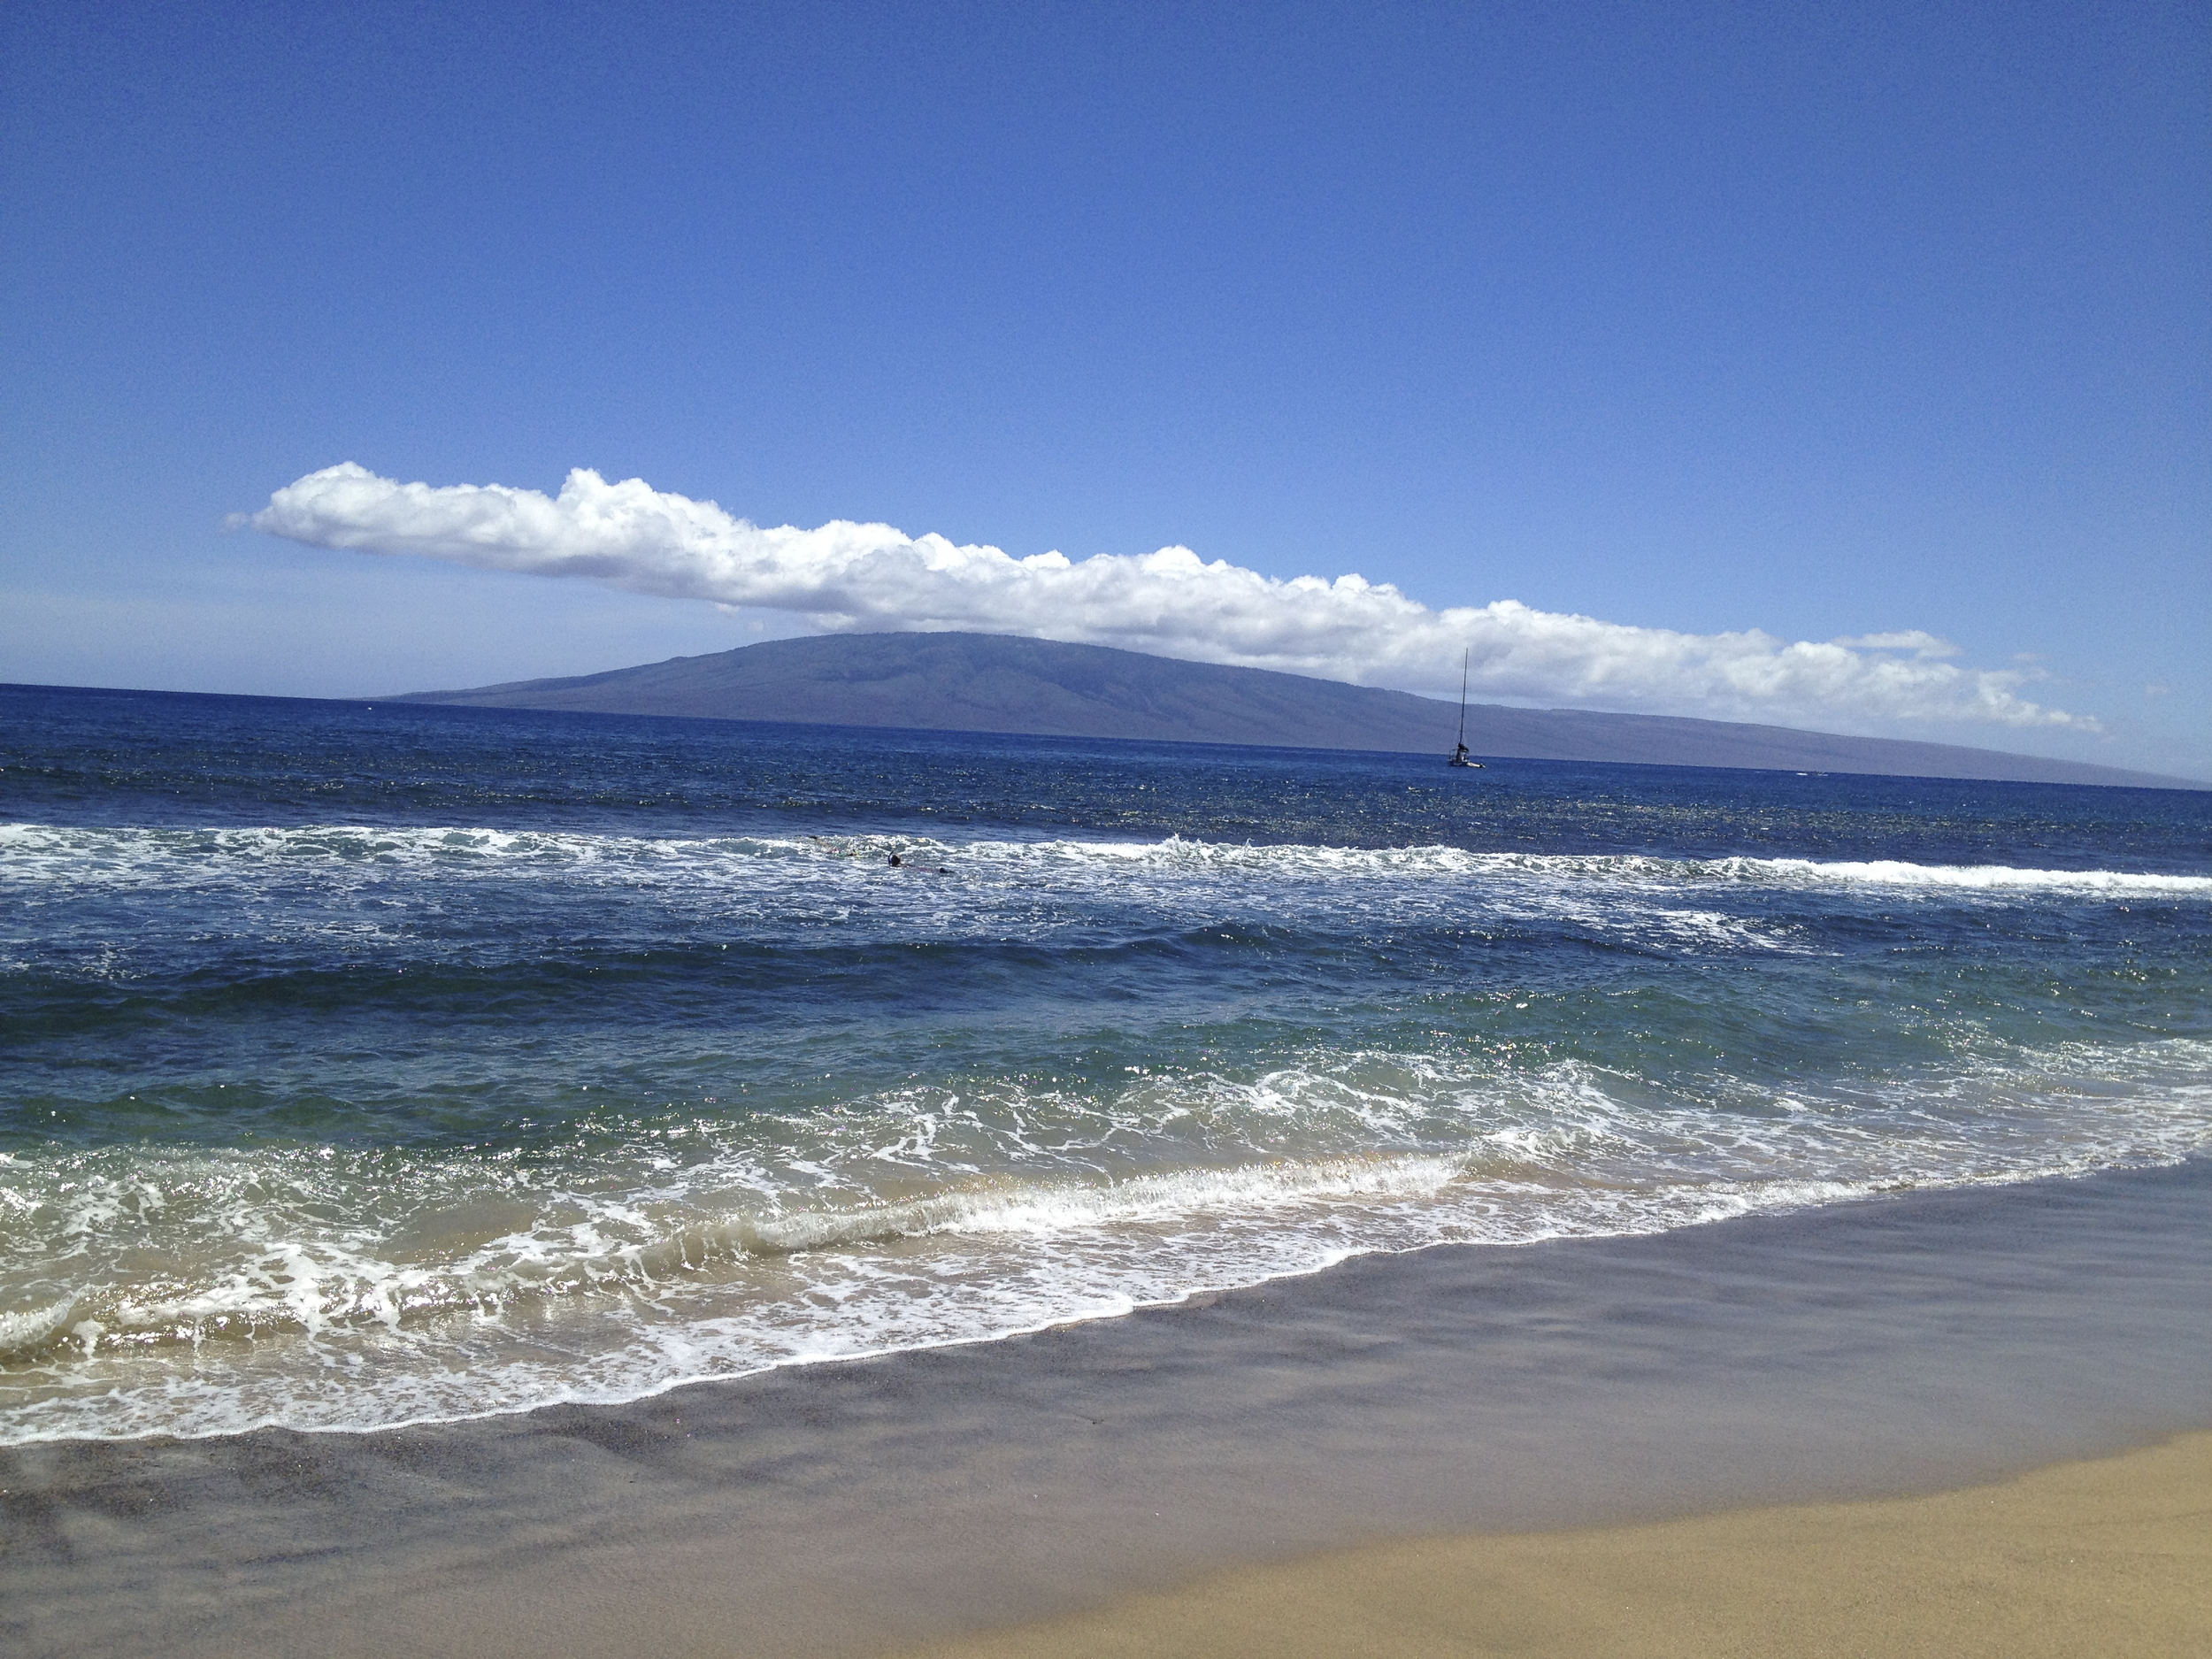 The view from the beach at the Hyatt Regency Maui